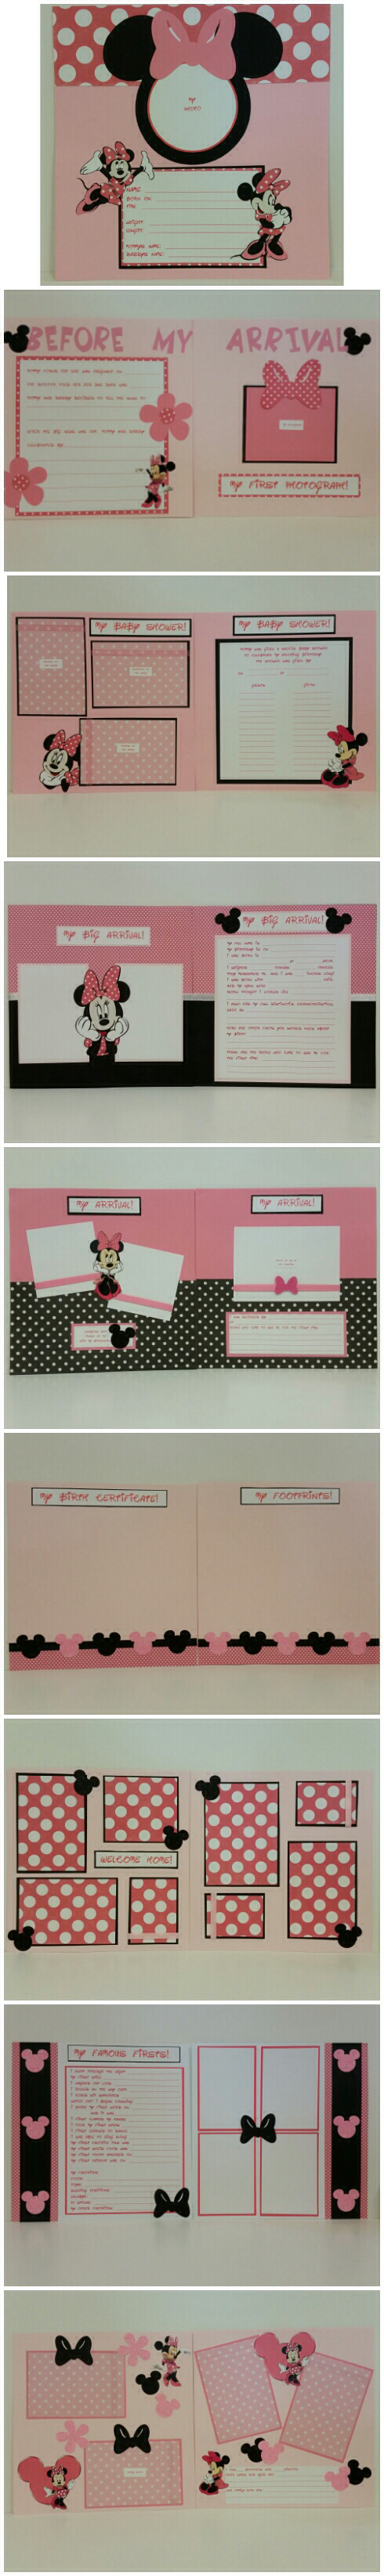 Minnie Mouse Baby Book Scrapbook Album Minnie Mouse Baby Book And